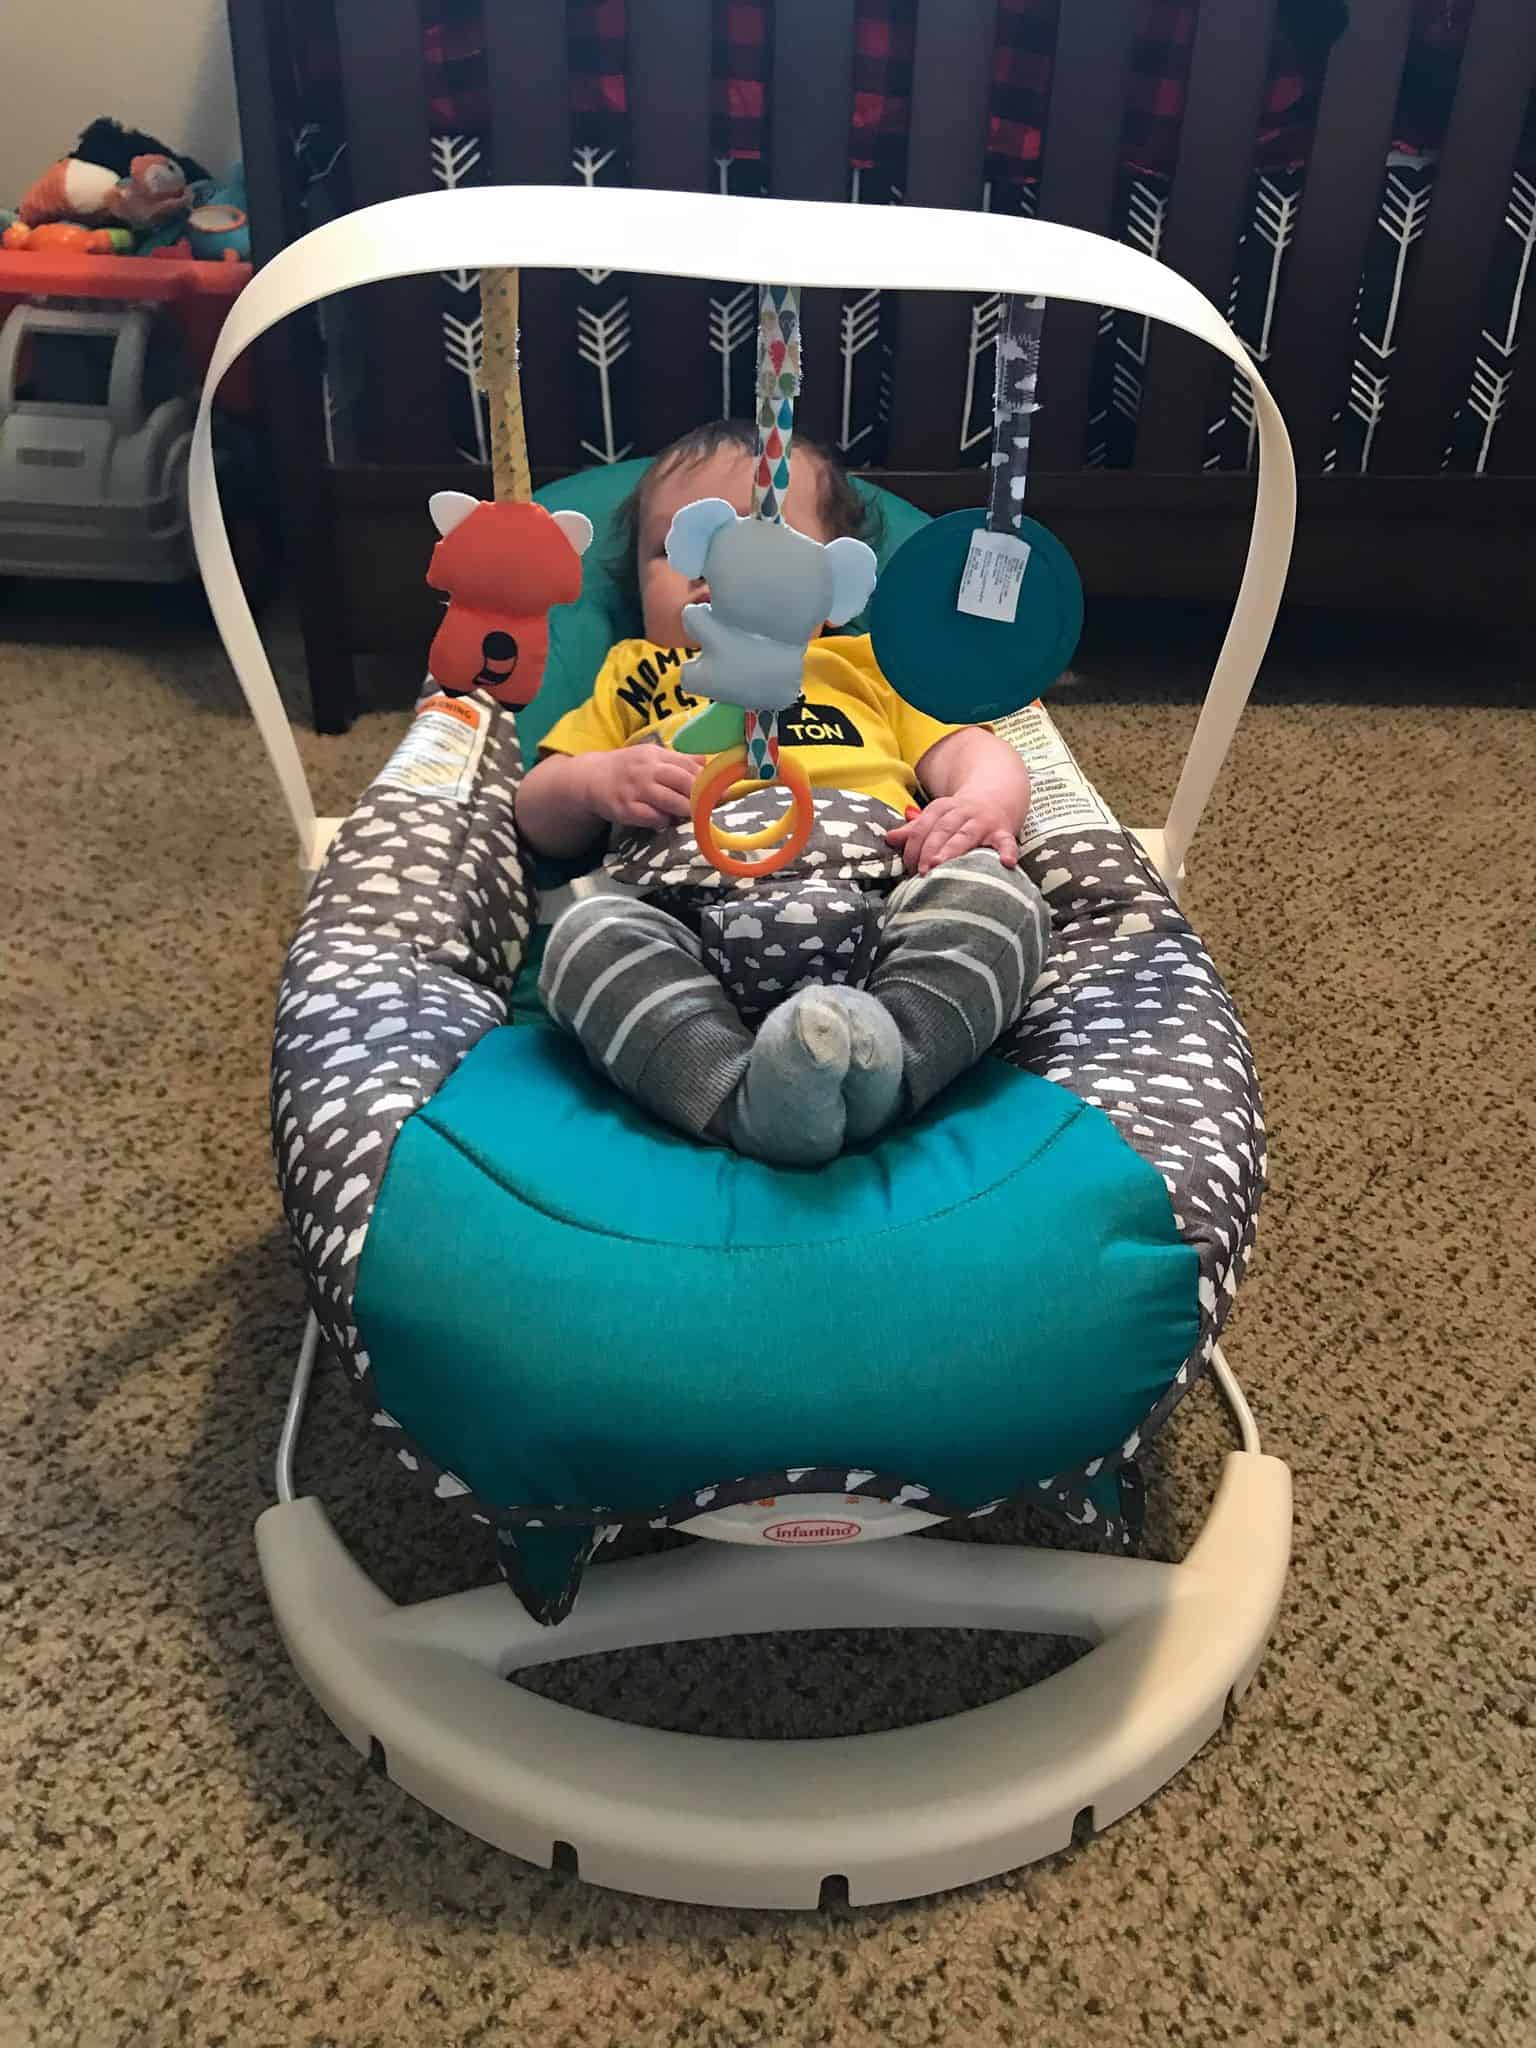 2-in-1 Bouncer & Activity Seat from Infantino